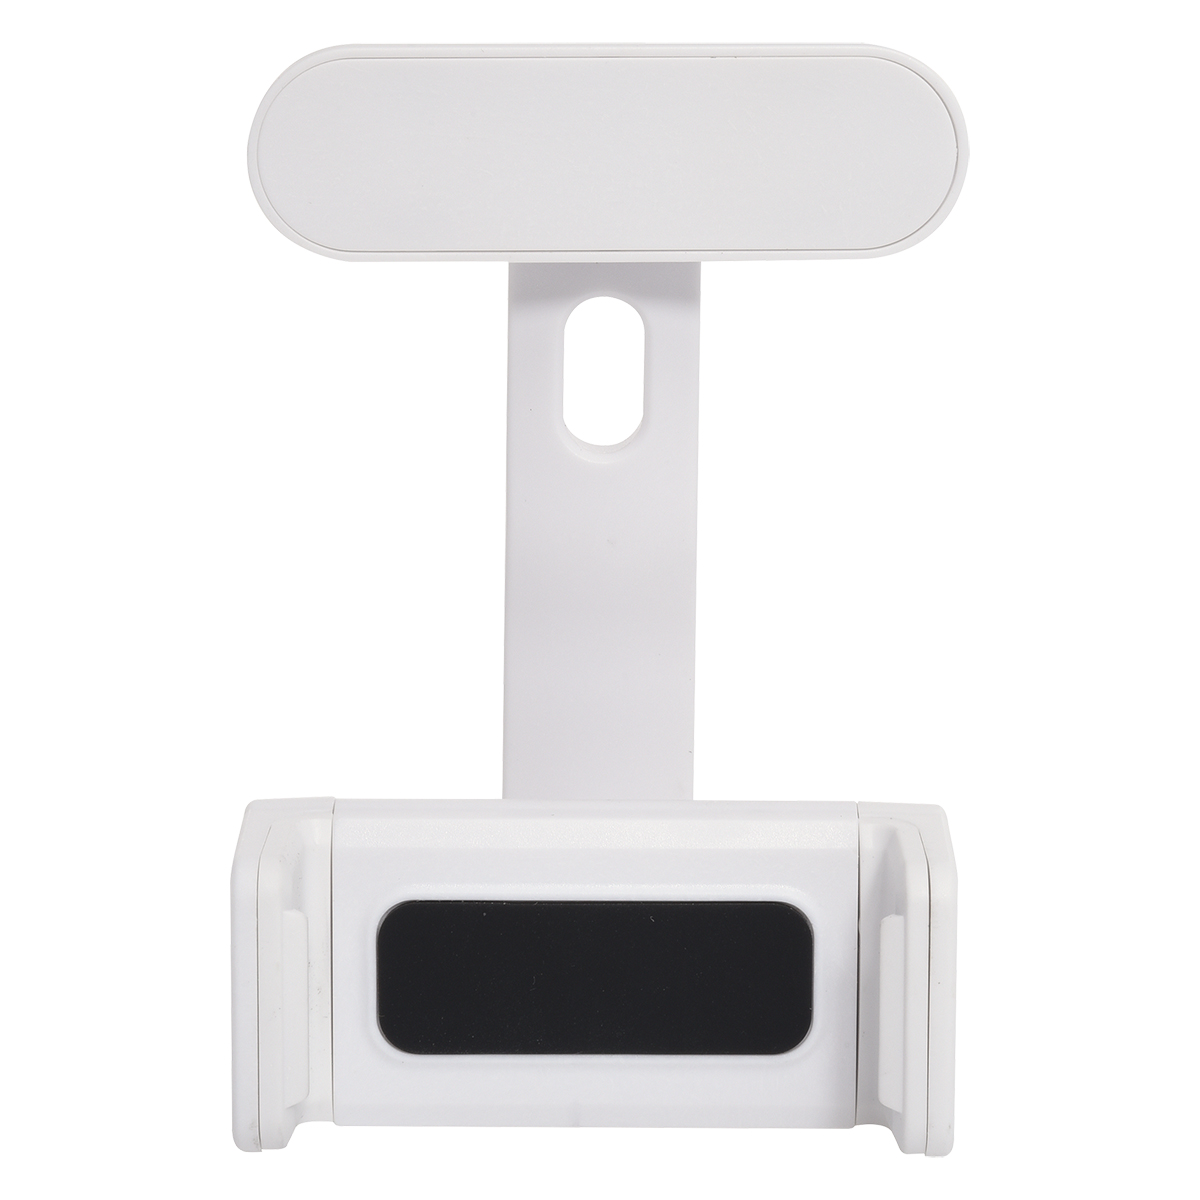 Rotator Auto Vent Phone Holder